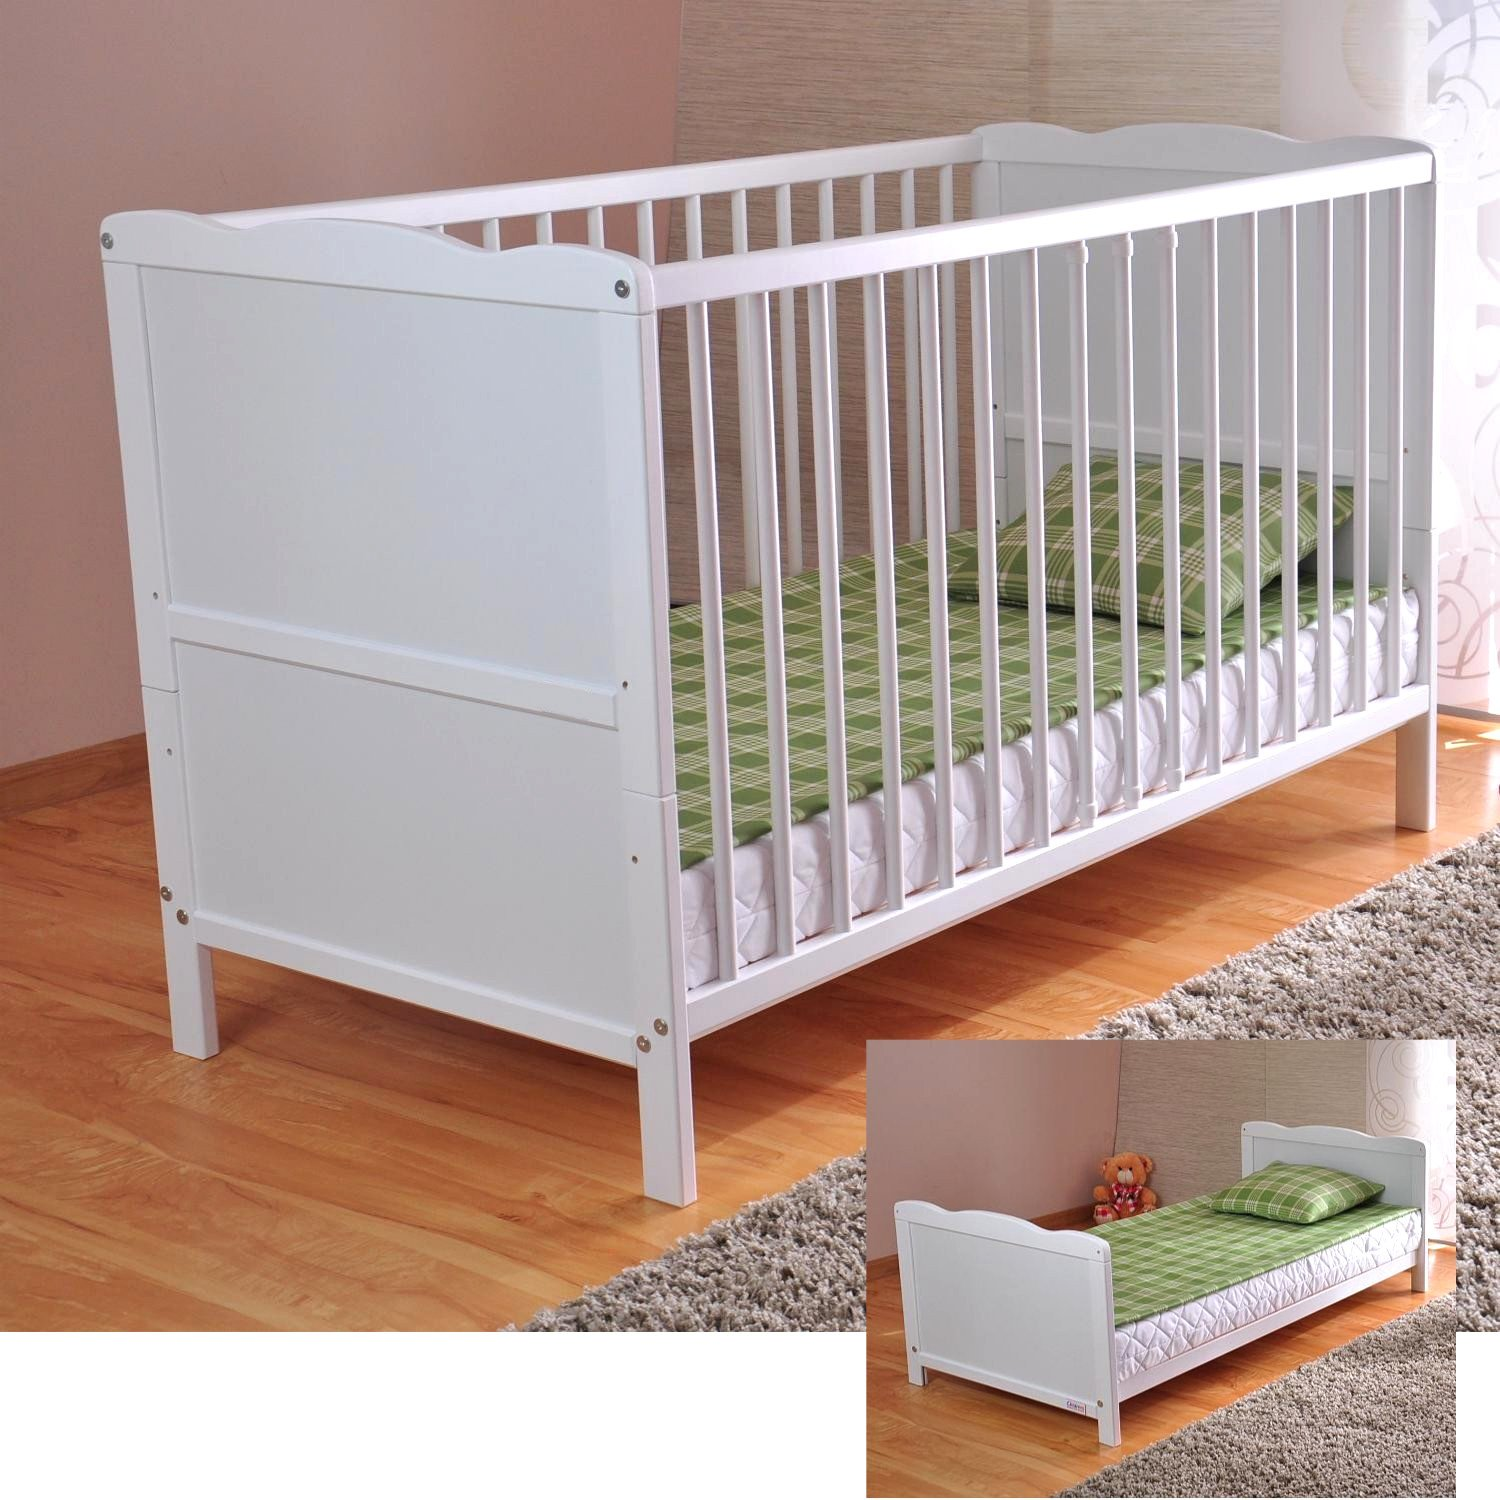 Baby Cots Uk Free uk delivery white solid wood baby cot bed deluxe foam free uk delivery white solid wood baby cot bed deluxe foam mattress converts into a junior bed 3 position water repellent mattress liner sisterspd